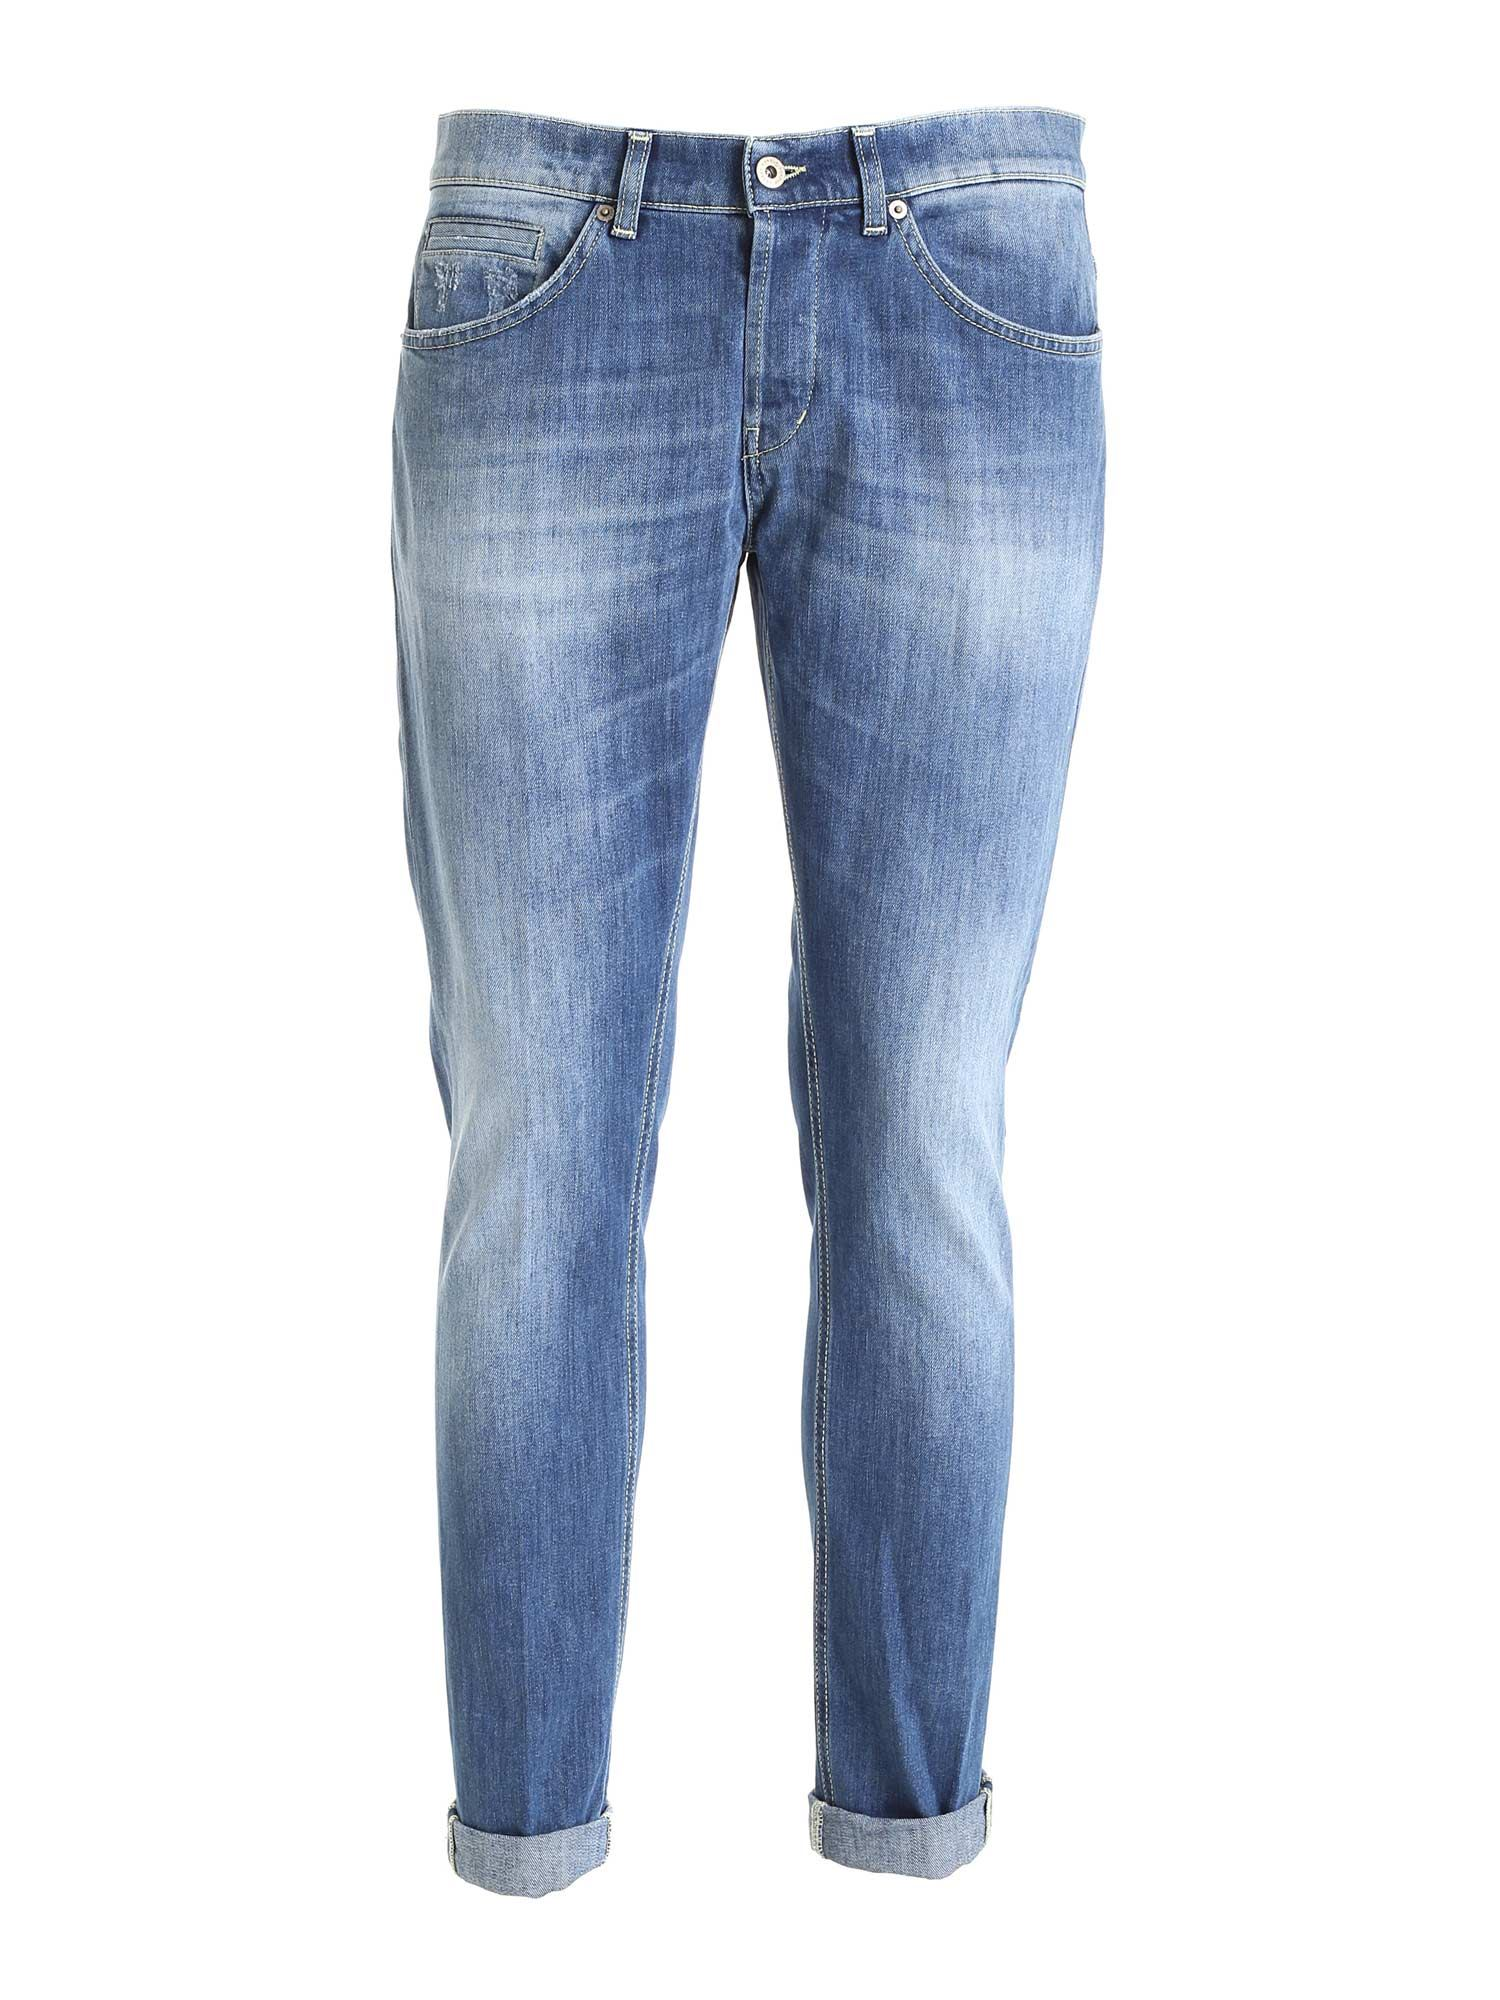 Dondup GEORGE JEANS IN LIGHT BLUE